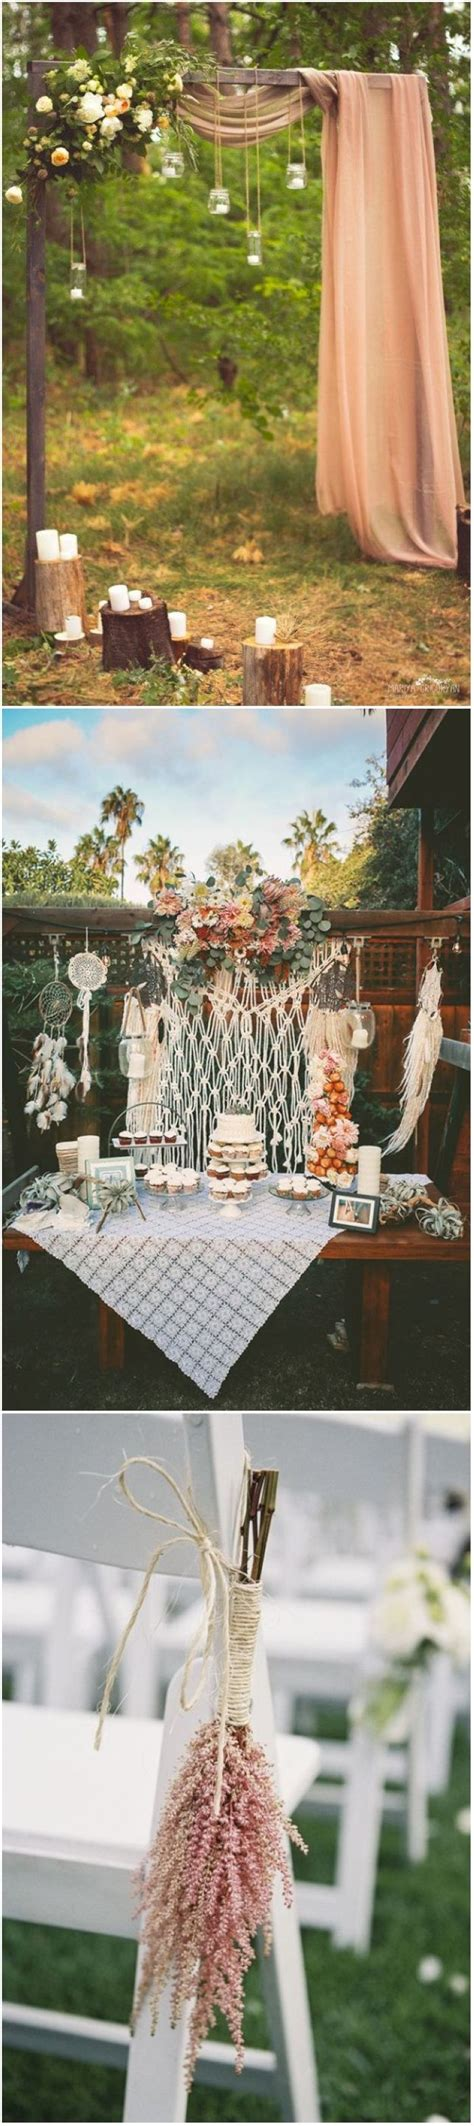 Wedding Aisle Decorations On A Budget by Size Of Wedding Ideas Rustic Decoration Candle